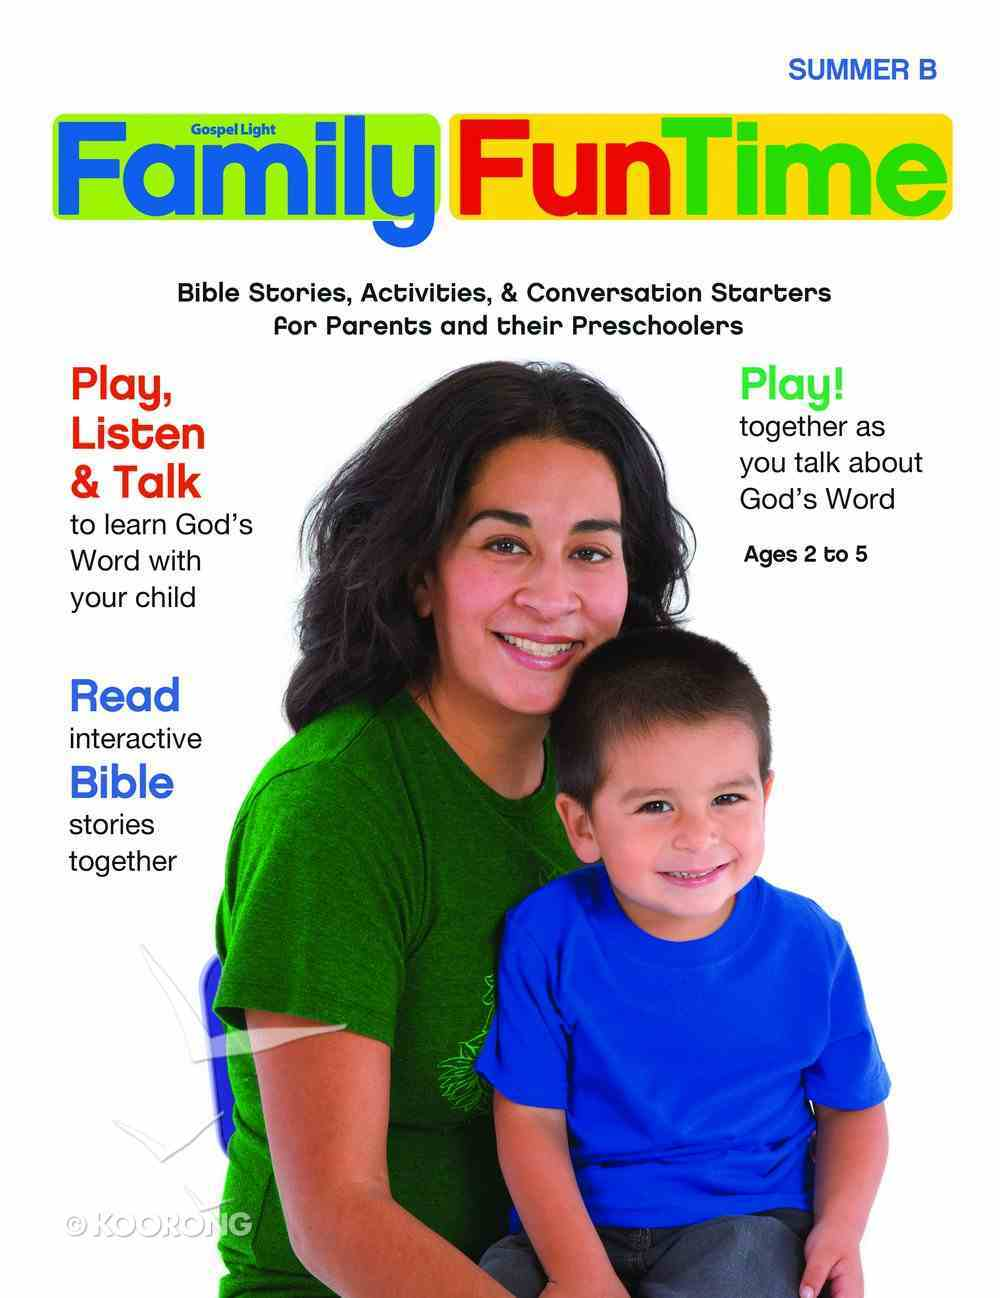 Gllw Summerb 2019/2020 Ages 2-5 Family Funtime Pages (Gospel Light Living Word Series) Paperback